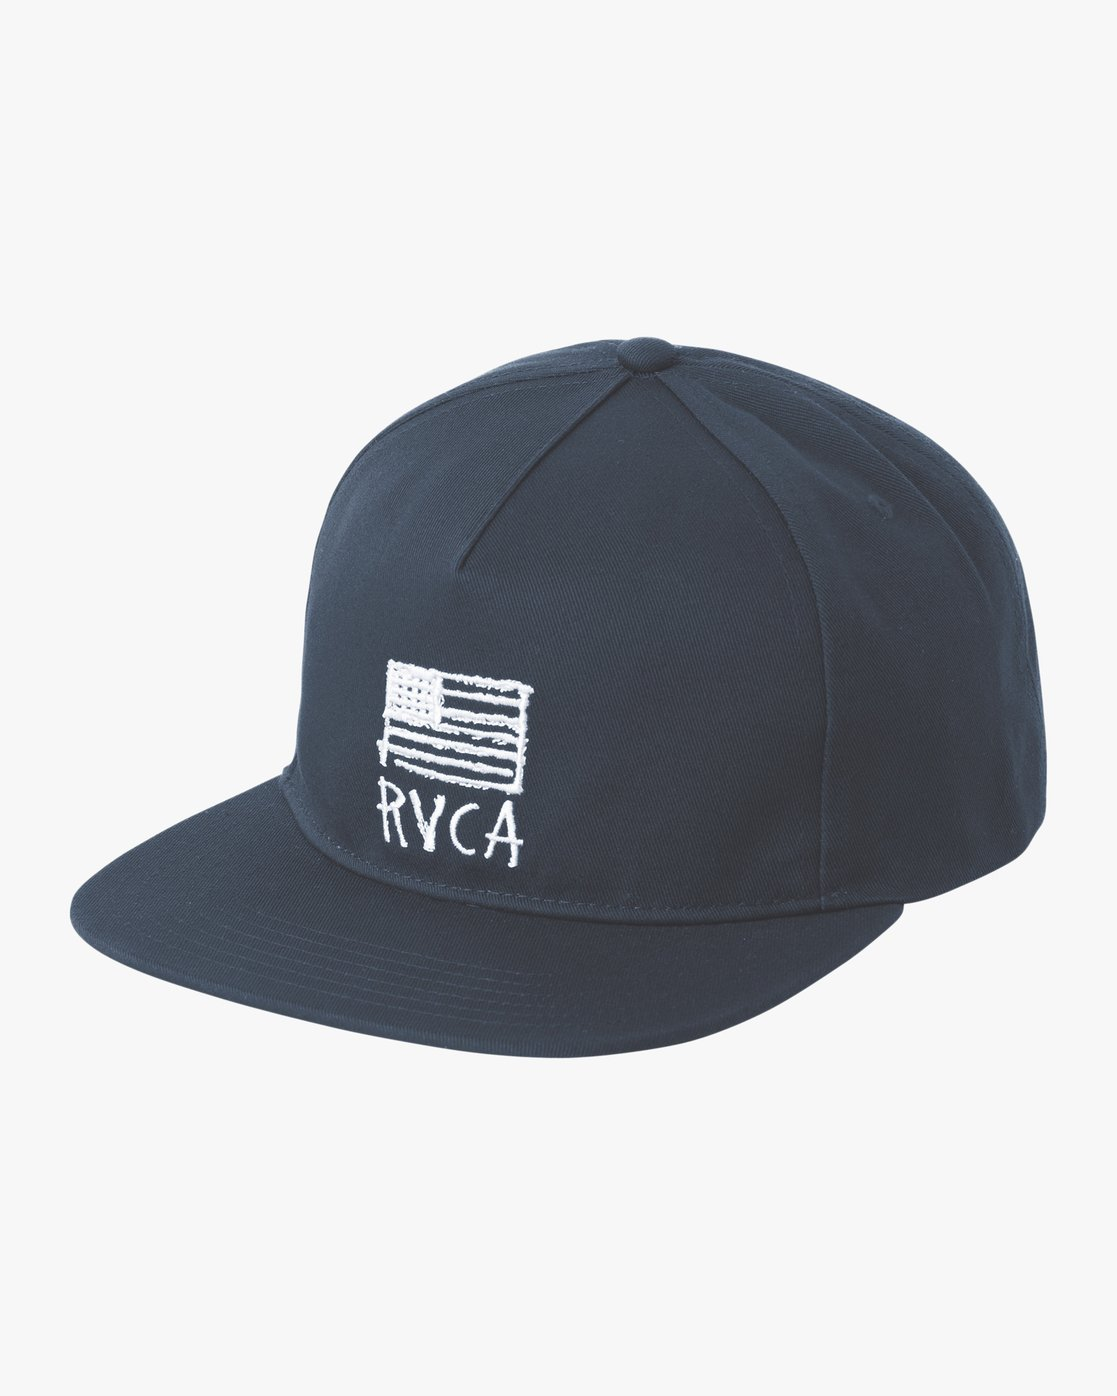 0 Flags Unstructured Hat Blue MAHWPRRF RVCA e73a1381d31